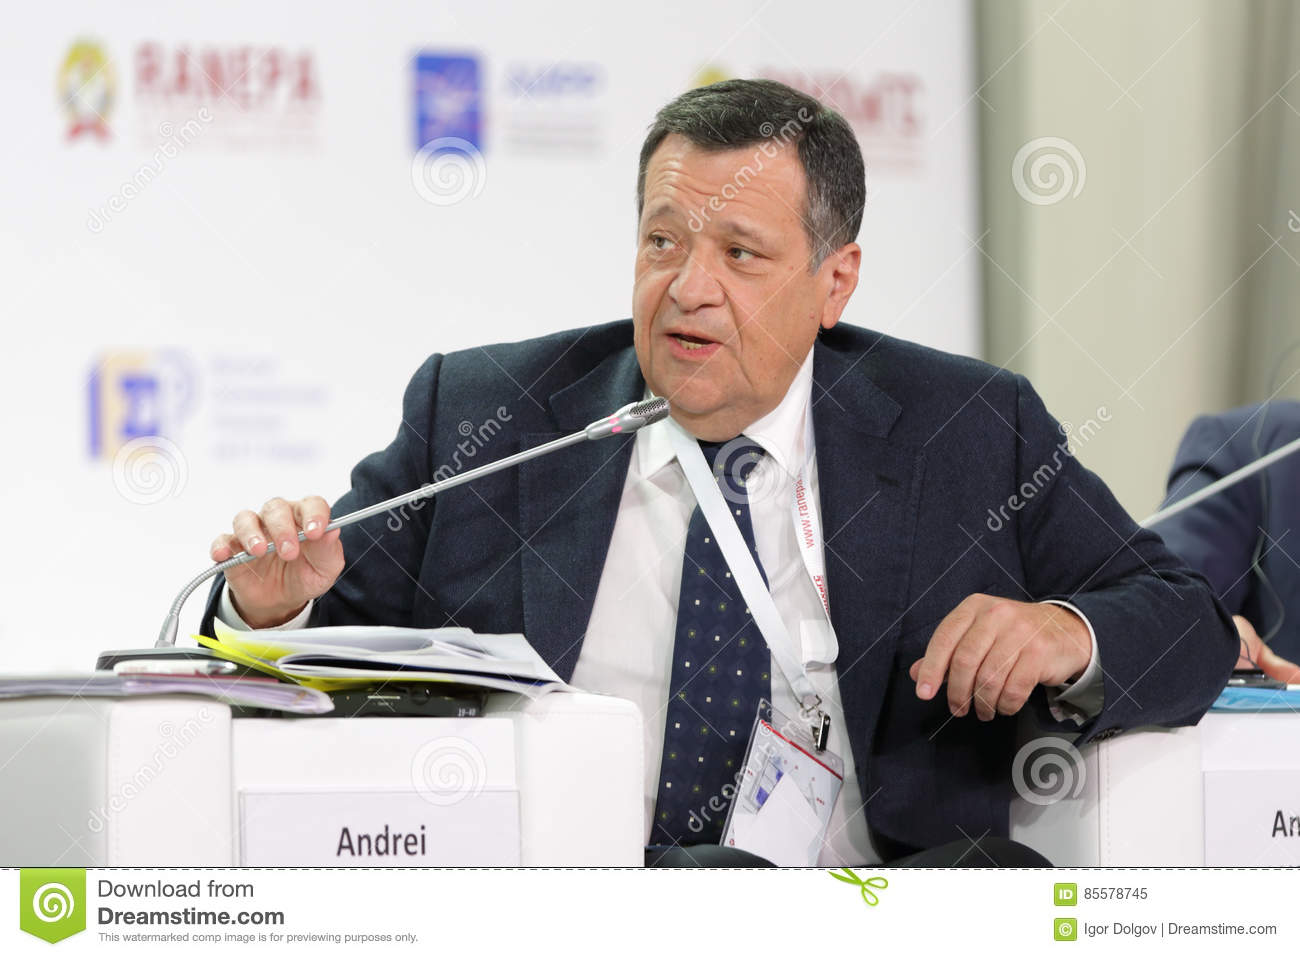 Makarov Andrei Mikhailovich - lawyer, broadcaster, politician: biography, personal life 27